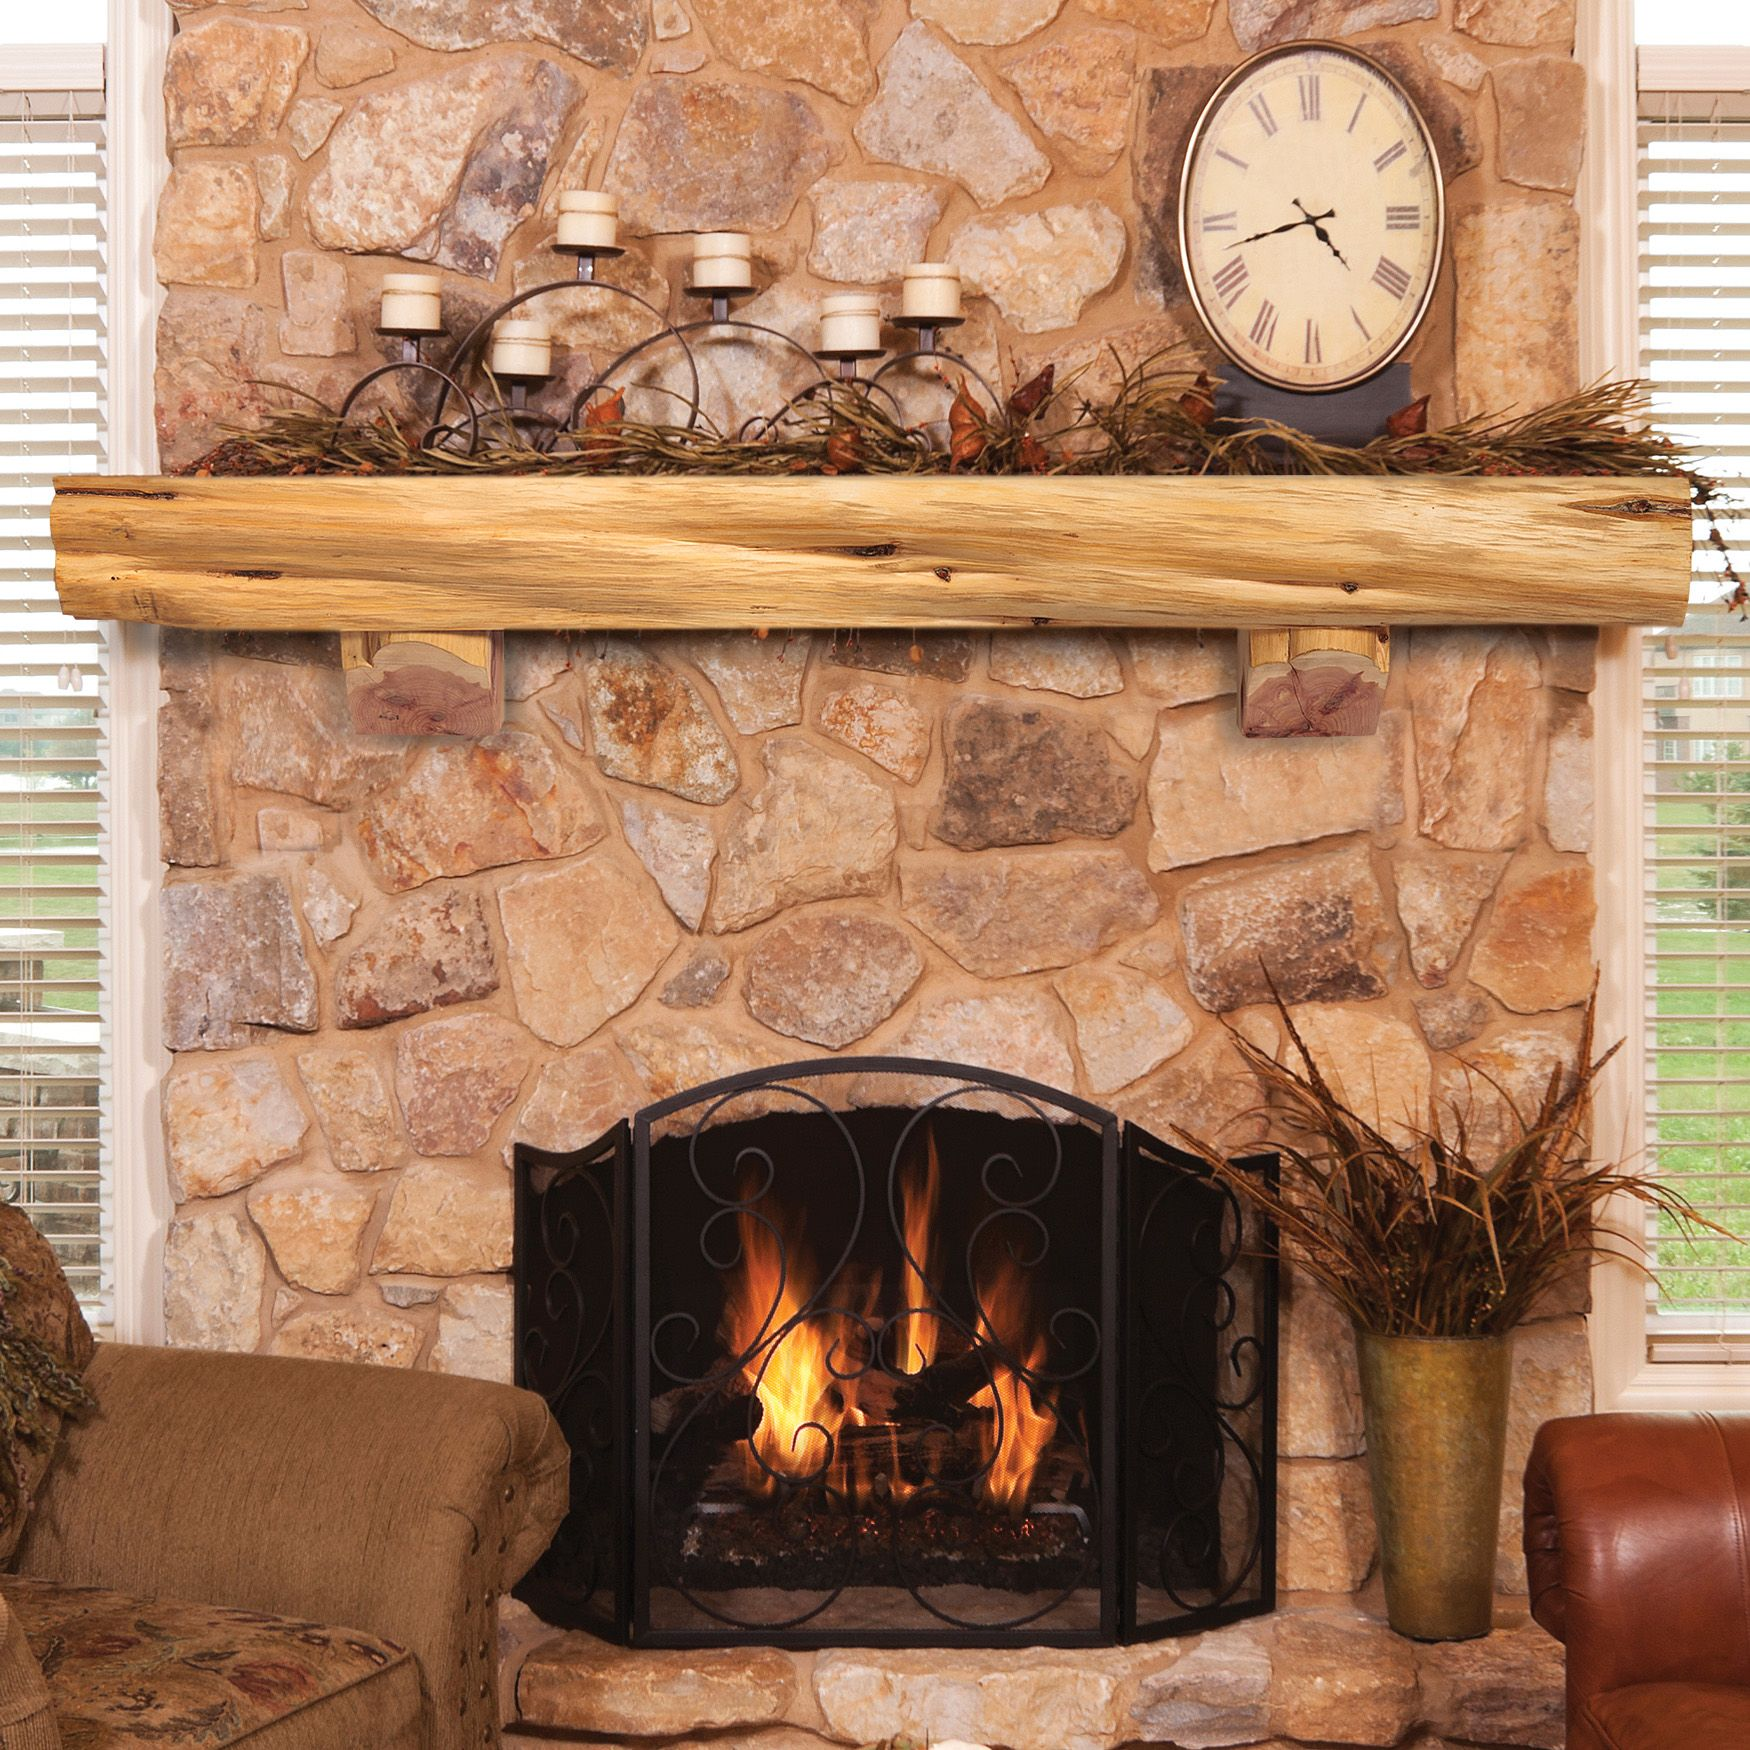 Related image Rustic fireplace mantels, Wood fireplace